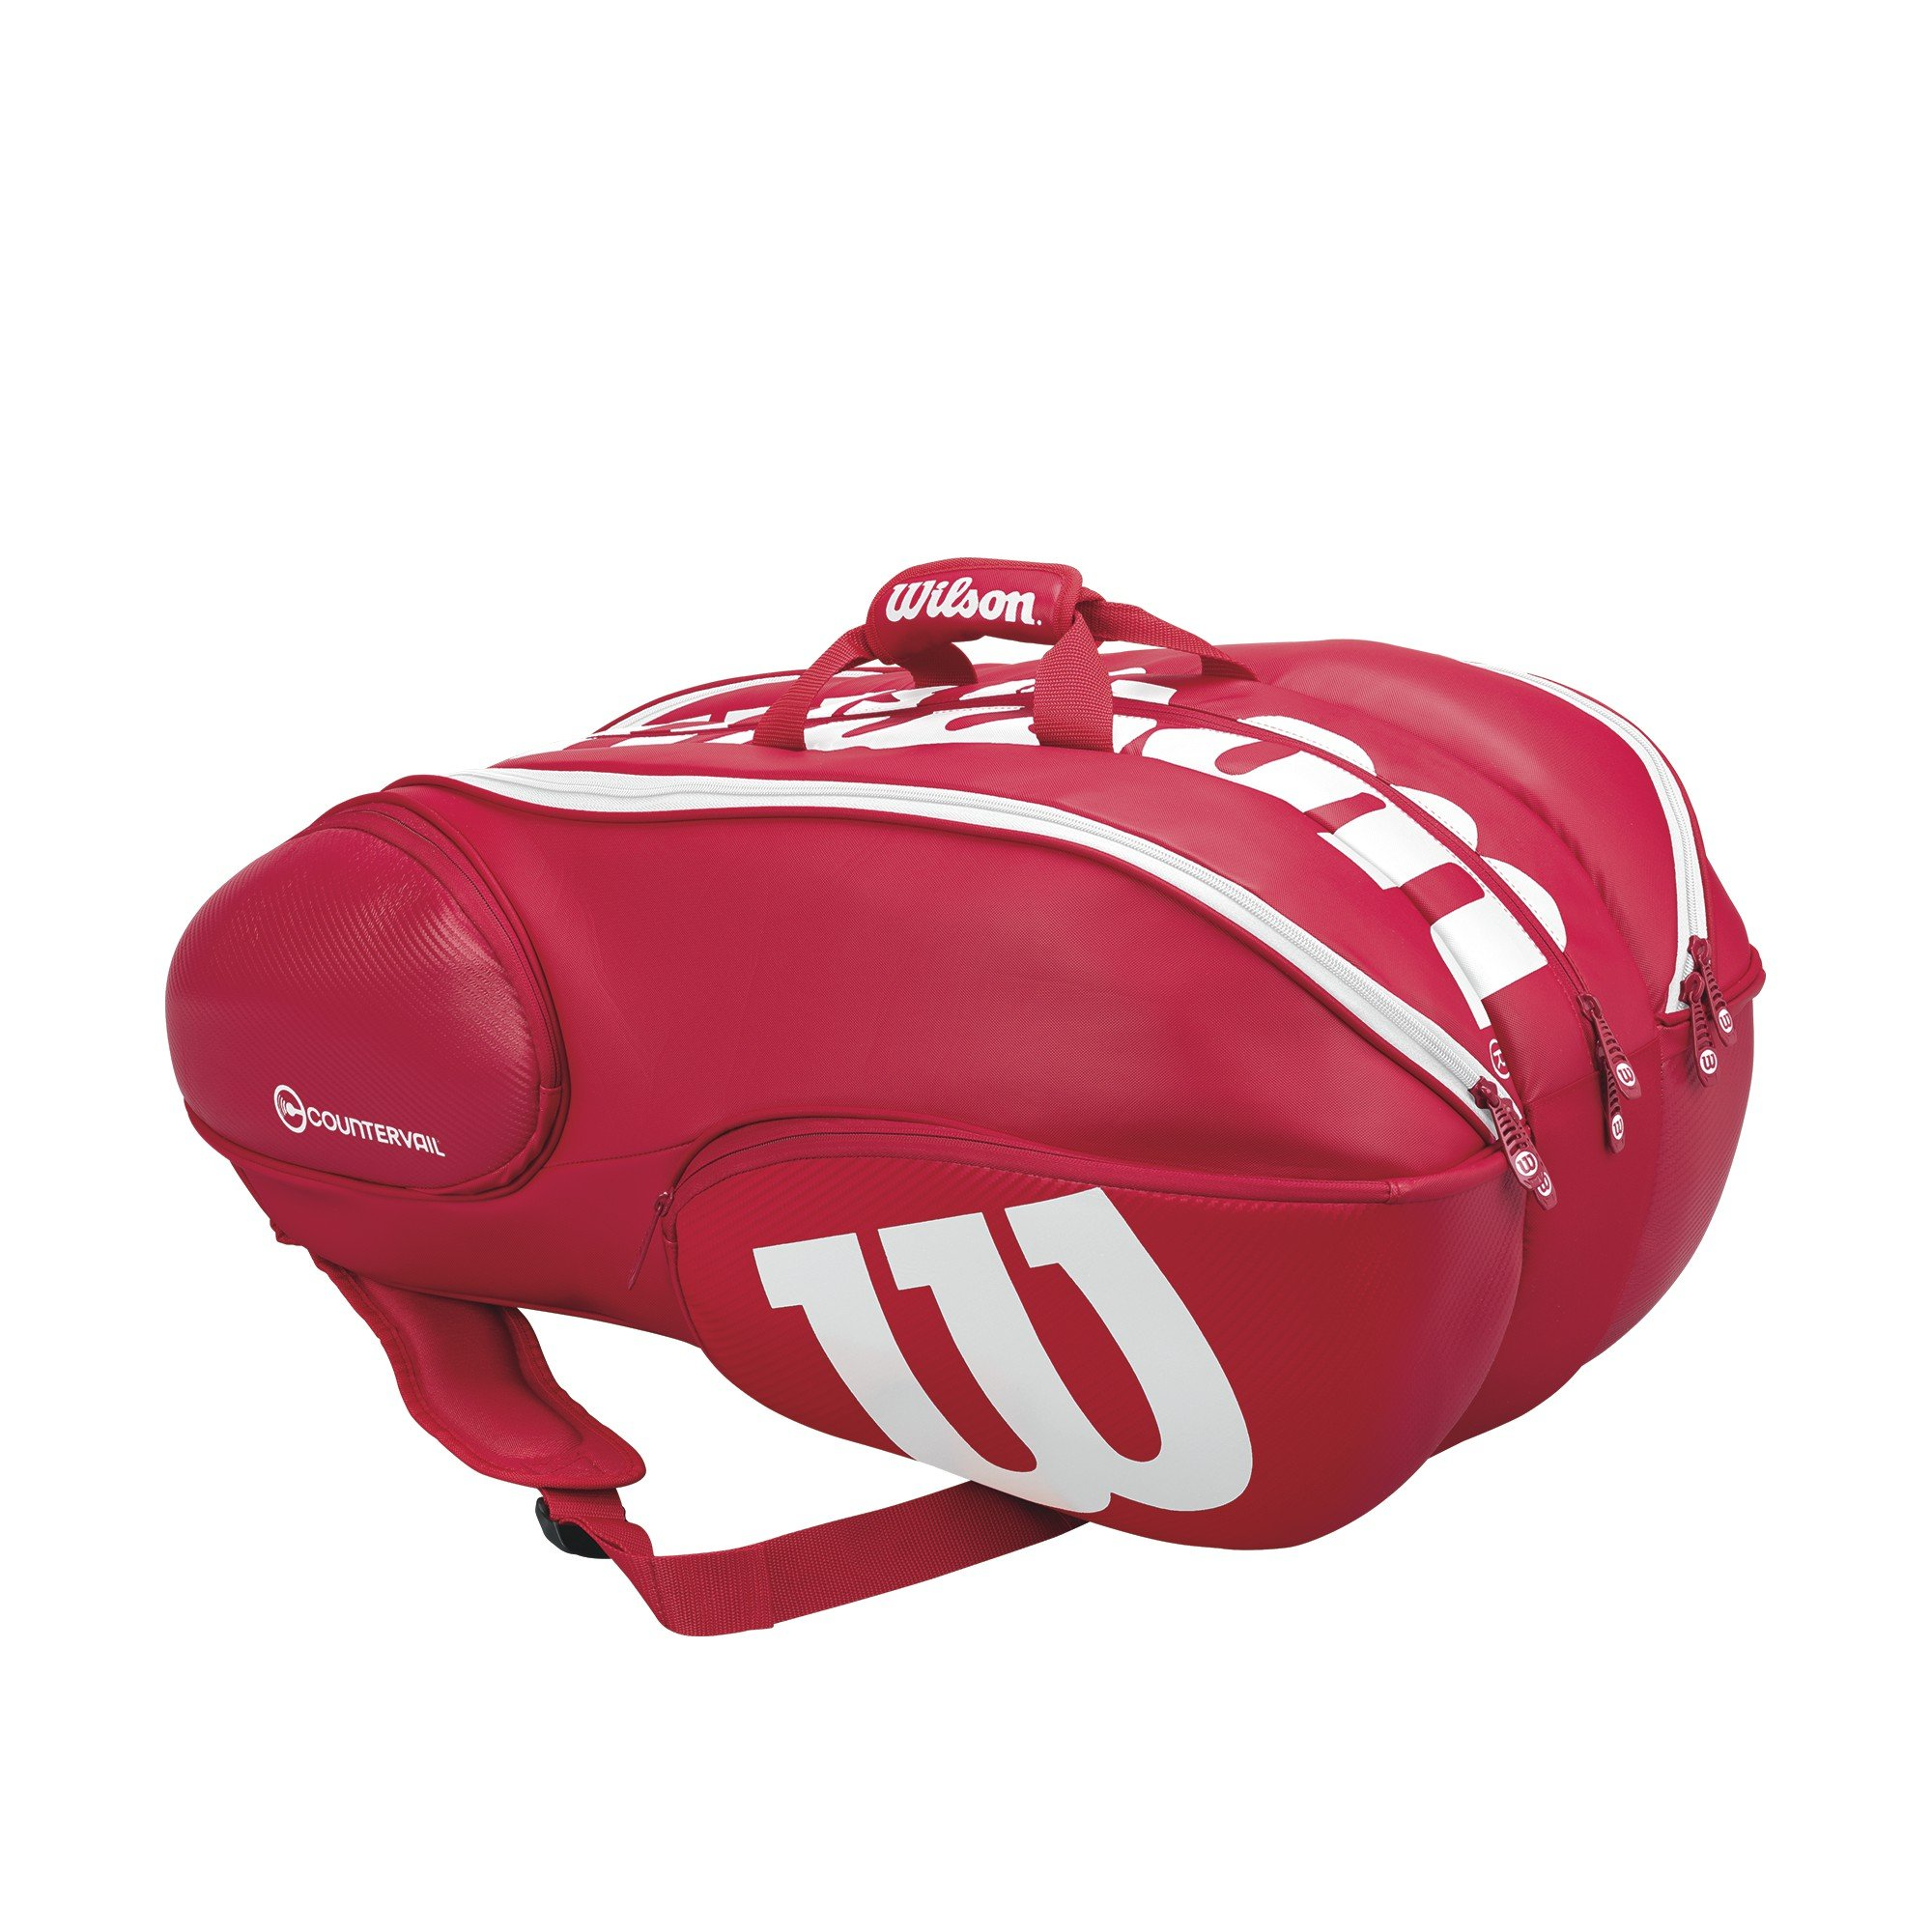 Vancouver Racket Bag, Pro Staff Collection - 15 Pack (Red/White)